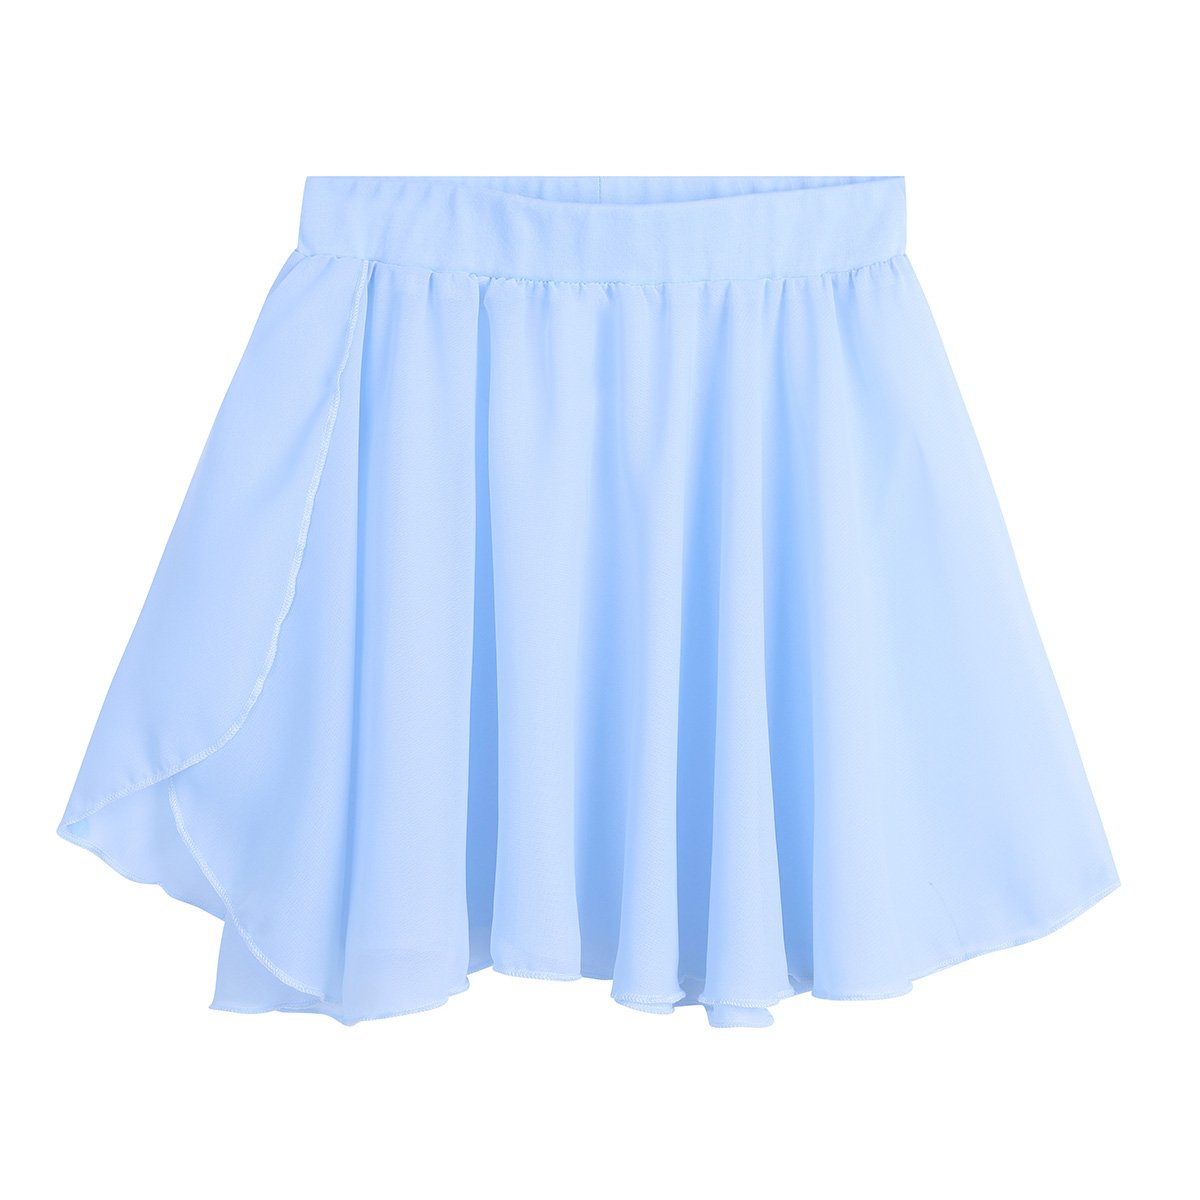 CHICTRY Children's Girl's Dance Sport Classics Chiffon Collection Wrap Over Skirt